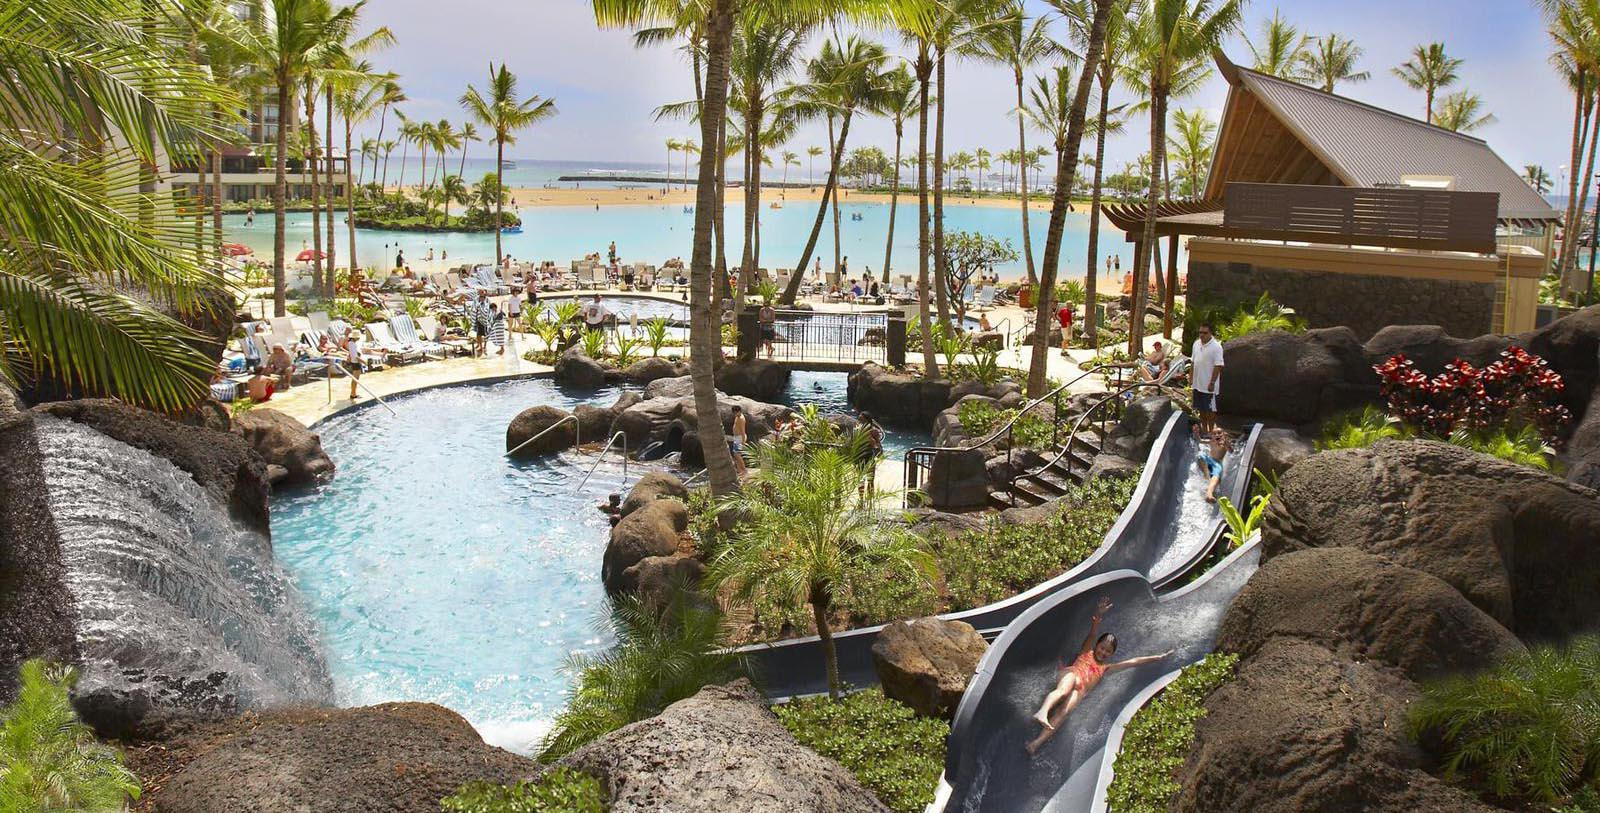 Image of pool and palm treesHilton Hawaiian Village® Waikiki Beach Resort, 1957, Member of Historic Hotels of America, in Honolulu, Hawaii, Explore